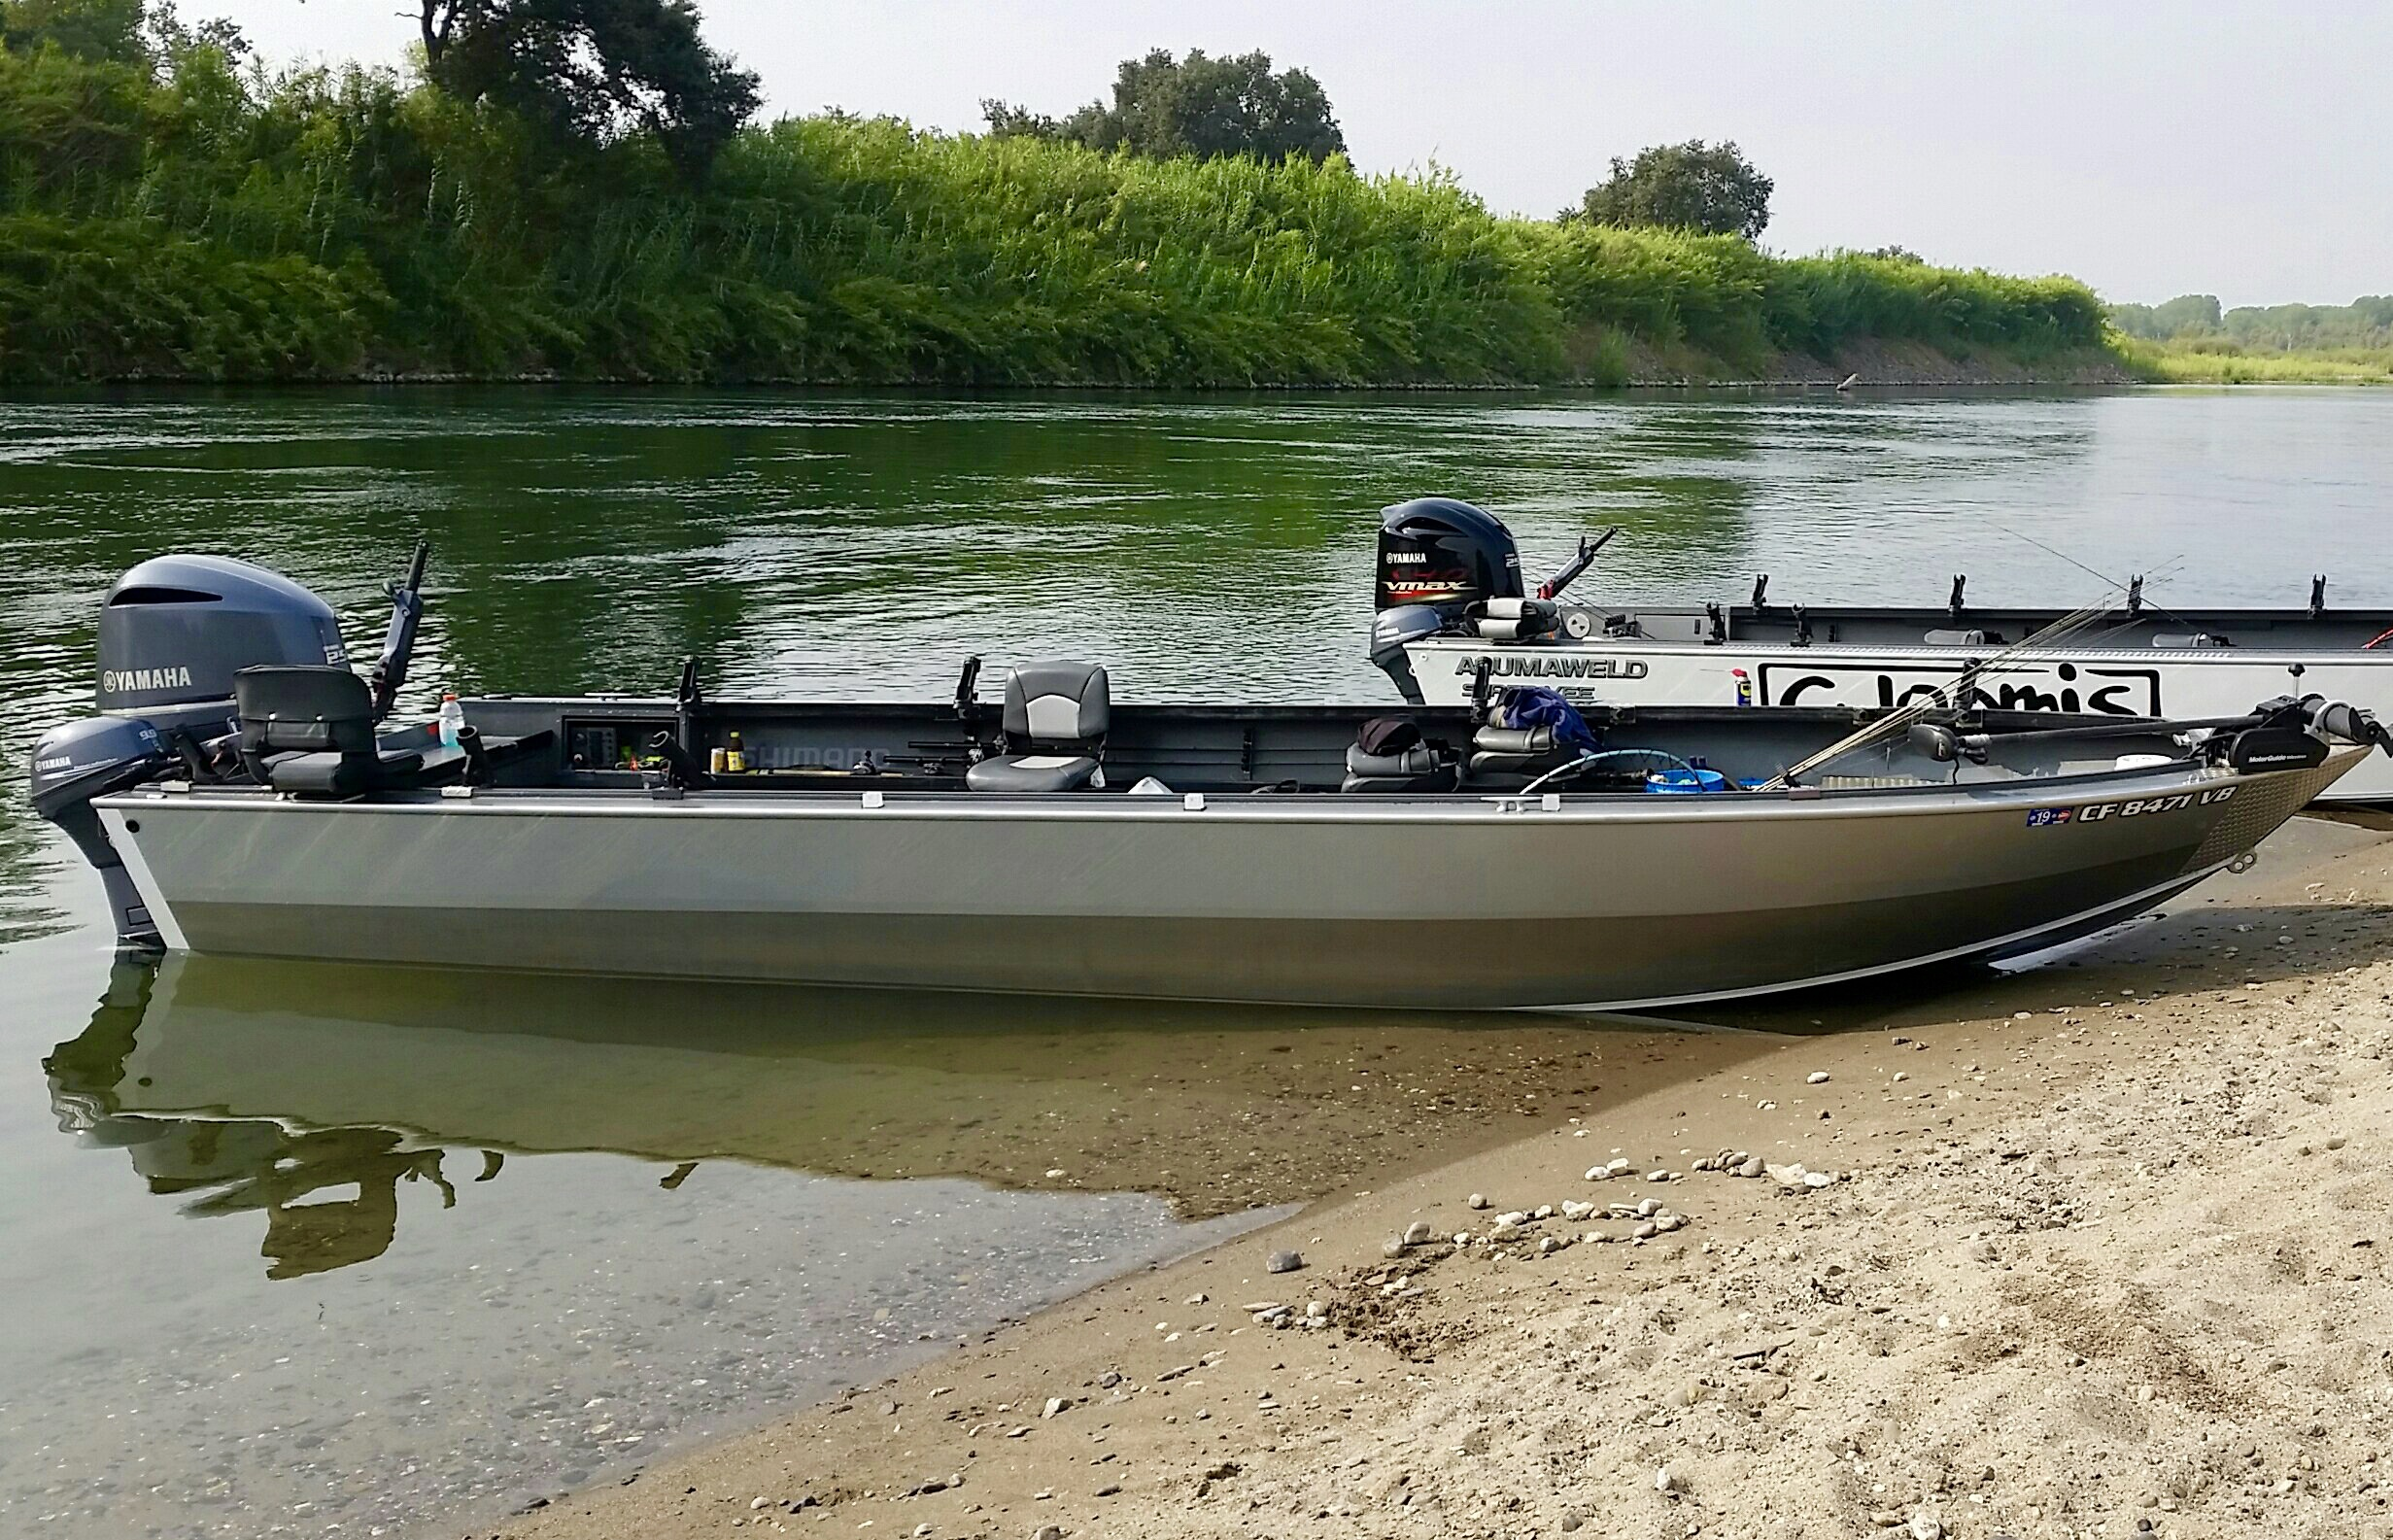 Justin's 25' Alumaweld jet boat serves as a very comfortable fishing platform for his power boat fishing trips on the Sacramento River and can easily accommodate 6 anglers.